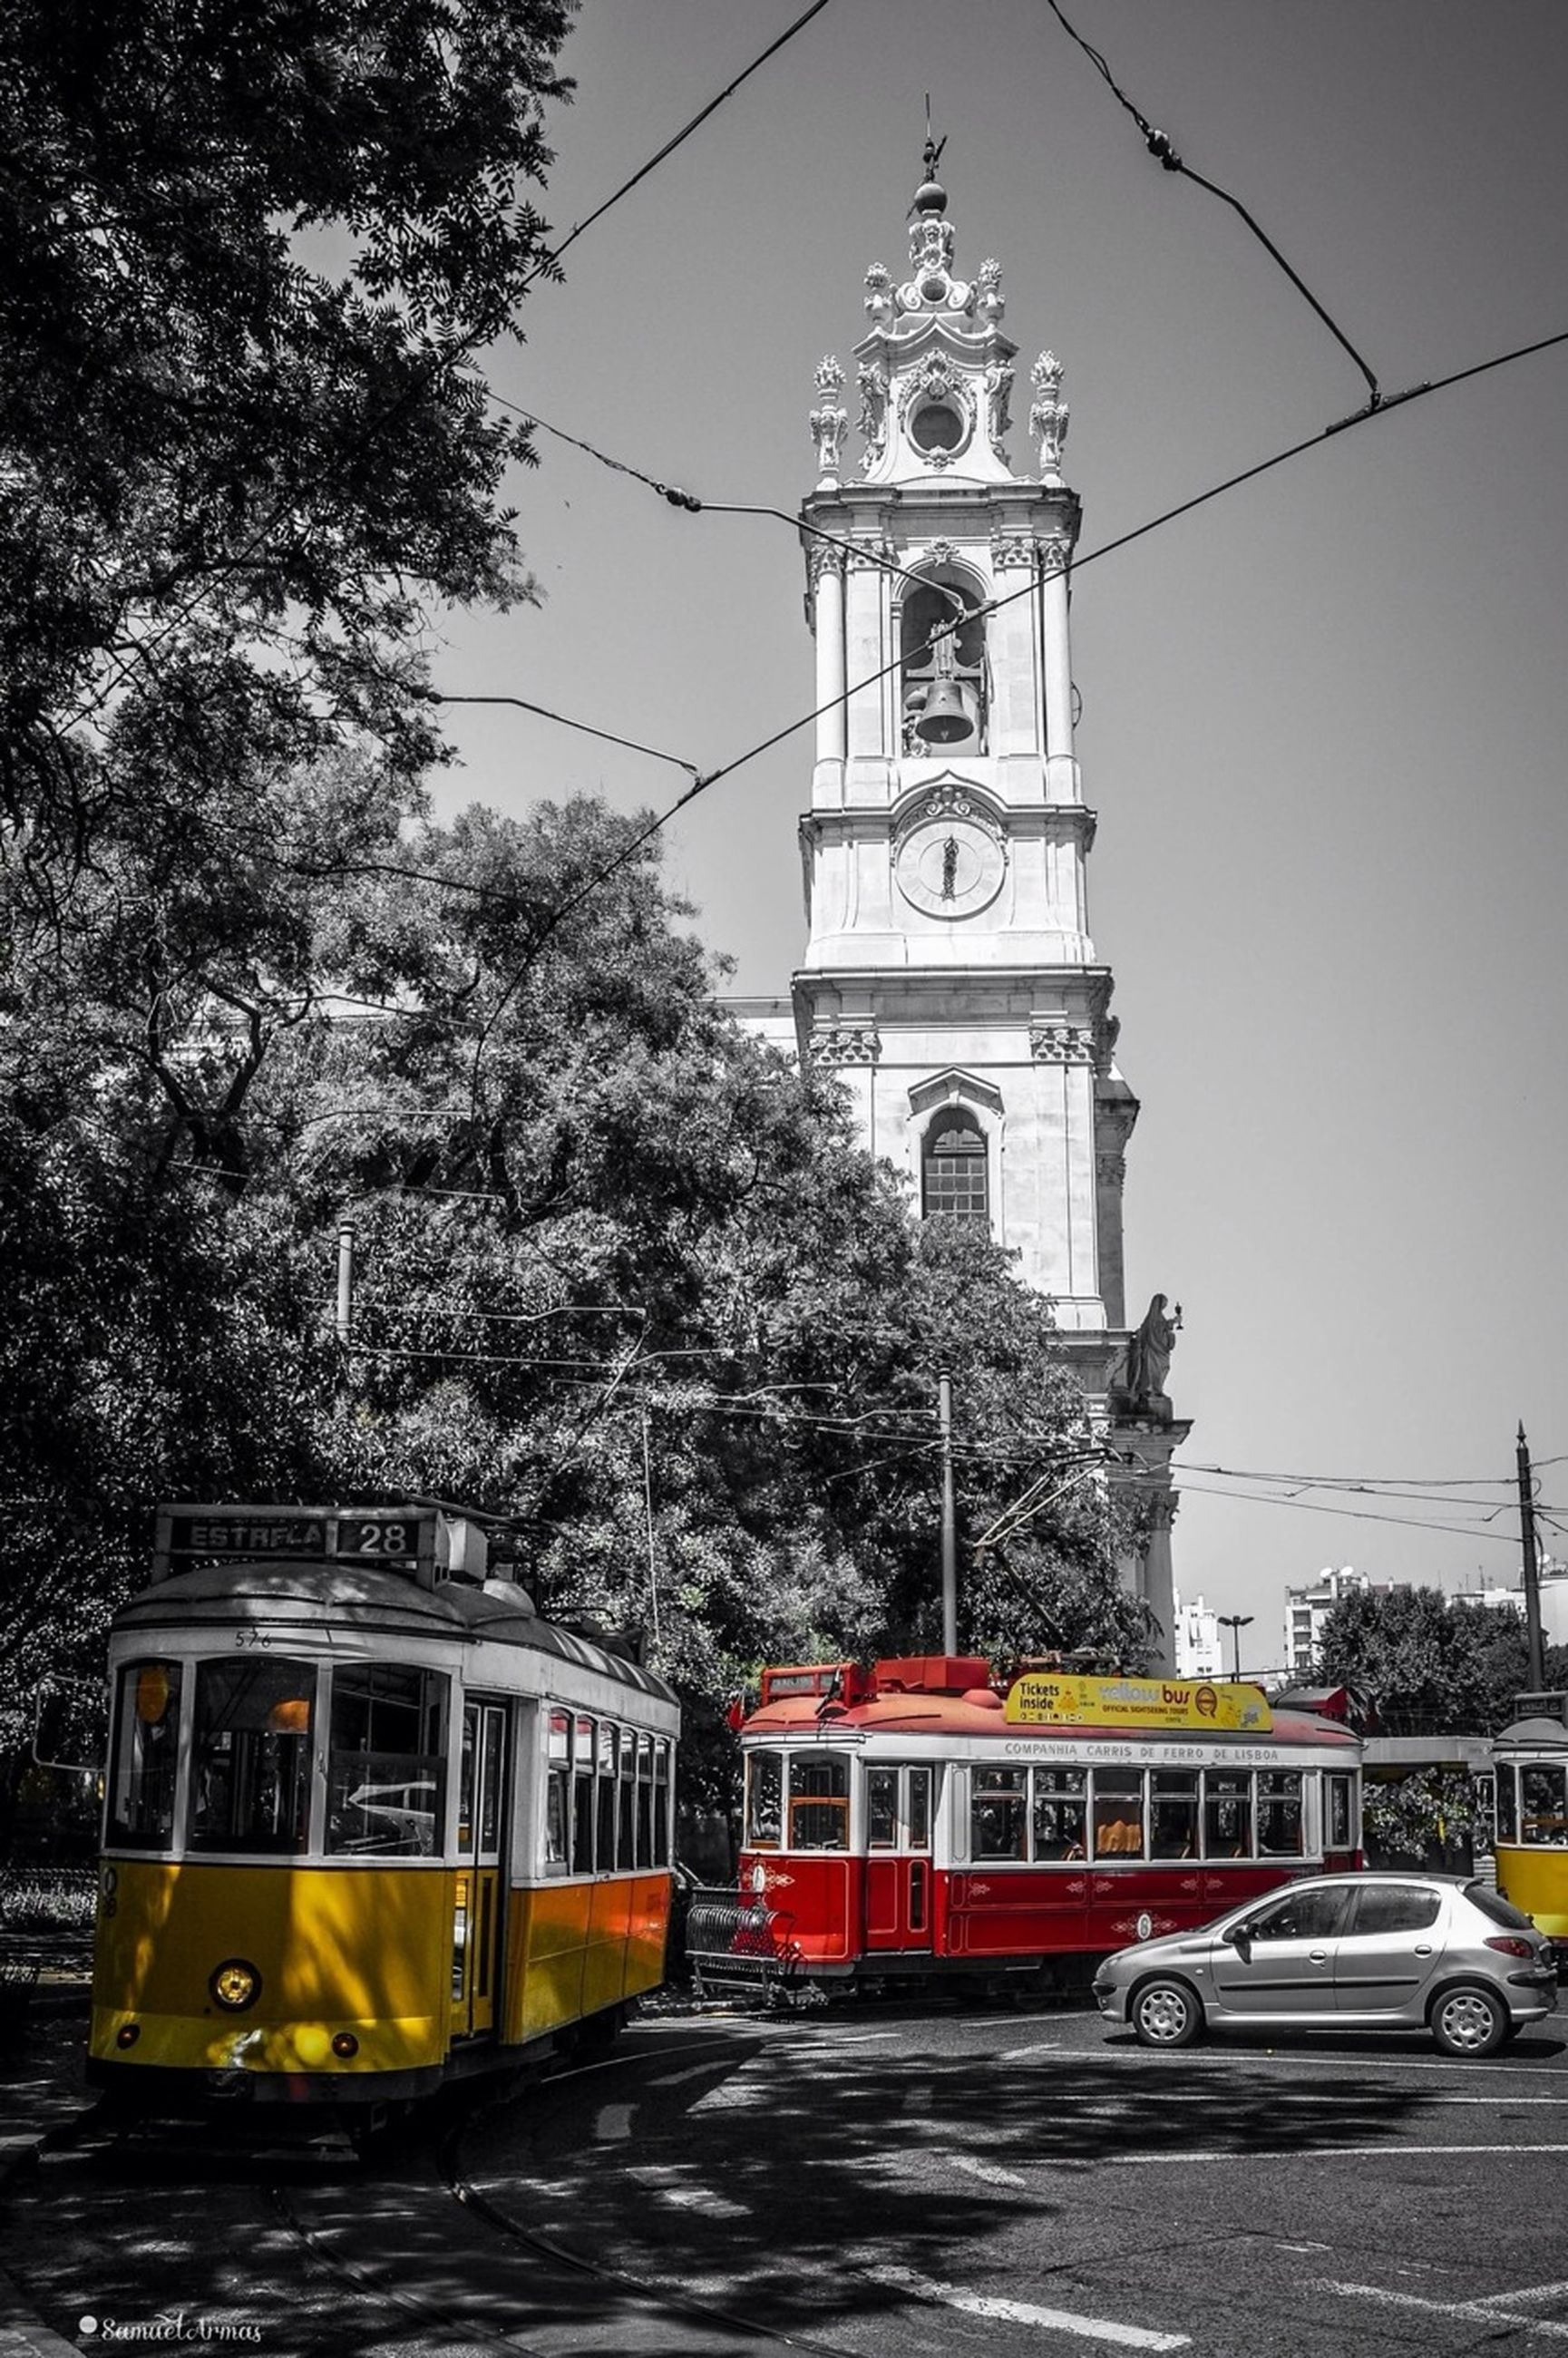 transportation, building exterior, architecture, built structure, mode of transport, land vehicle, church, tree, religion, car, street, road, clear sky, travel, clock tower, public transportation, clock, place of worship, tower